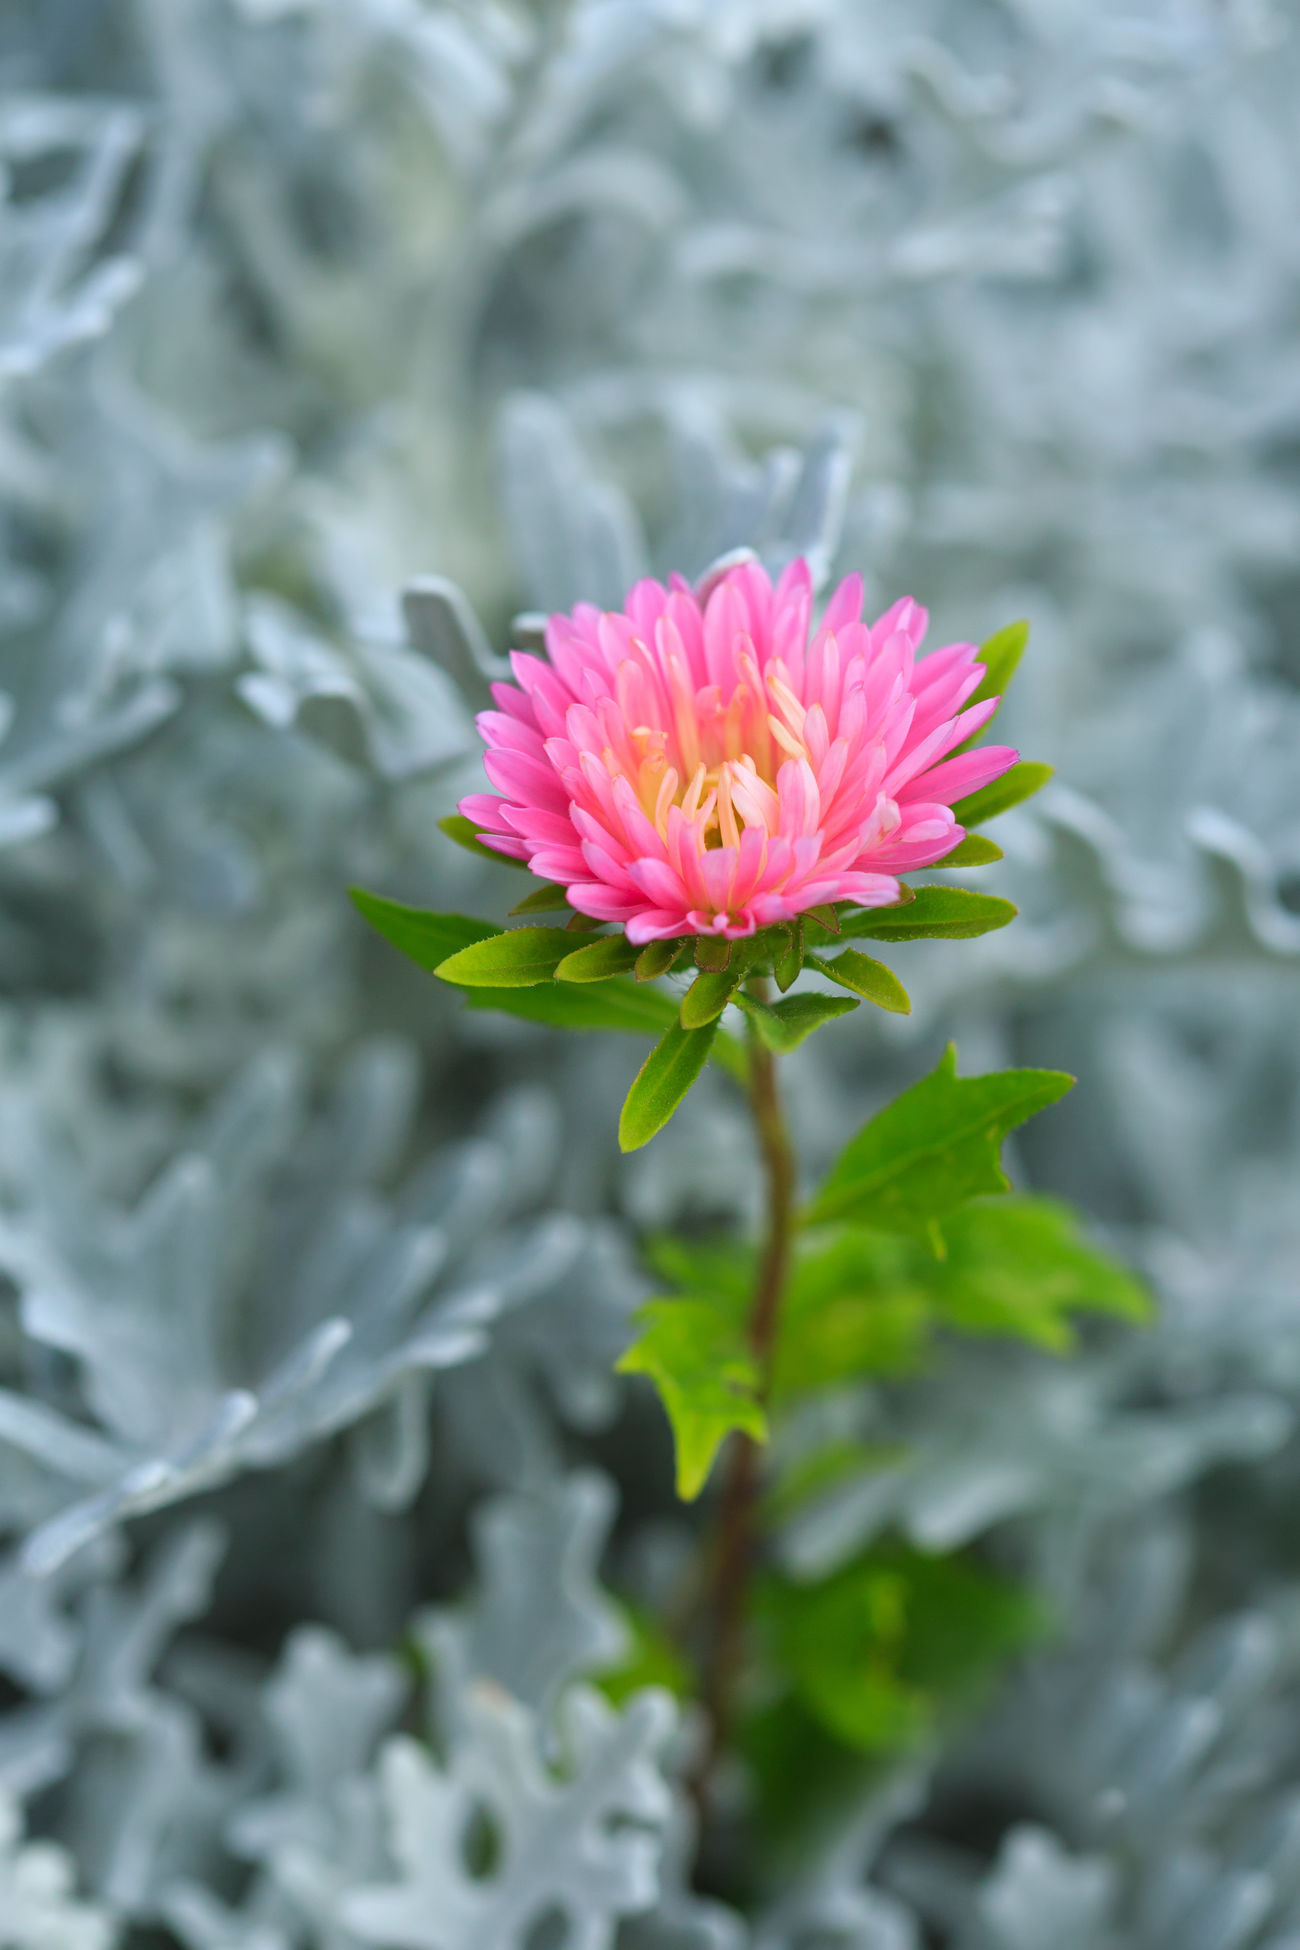 China Aster with Dusty Miller Flower Pink Color Fragility Nature Beauty In Nature Freshness Flower Head Petal No People Close-up Outdoors Plant Nature Flowers In My Garden Pink Flowers Colors Pink Pink Flower Vertical Composition